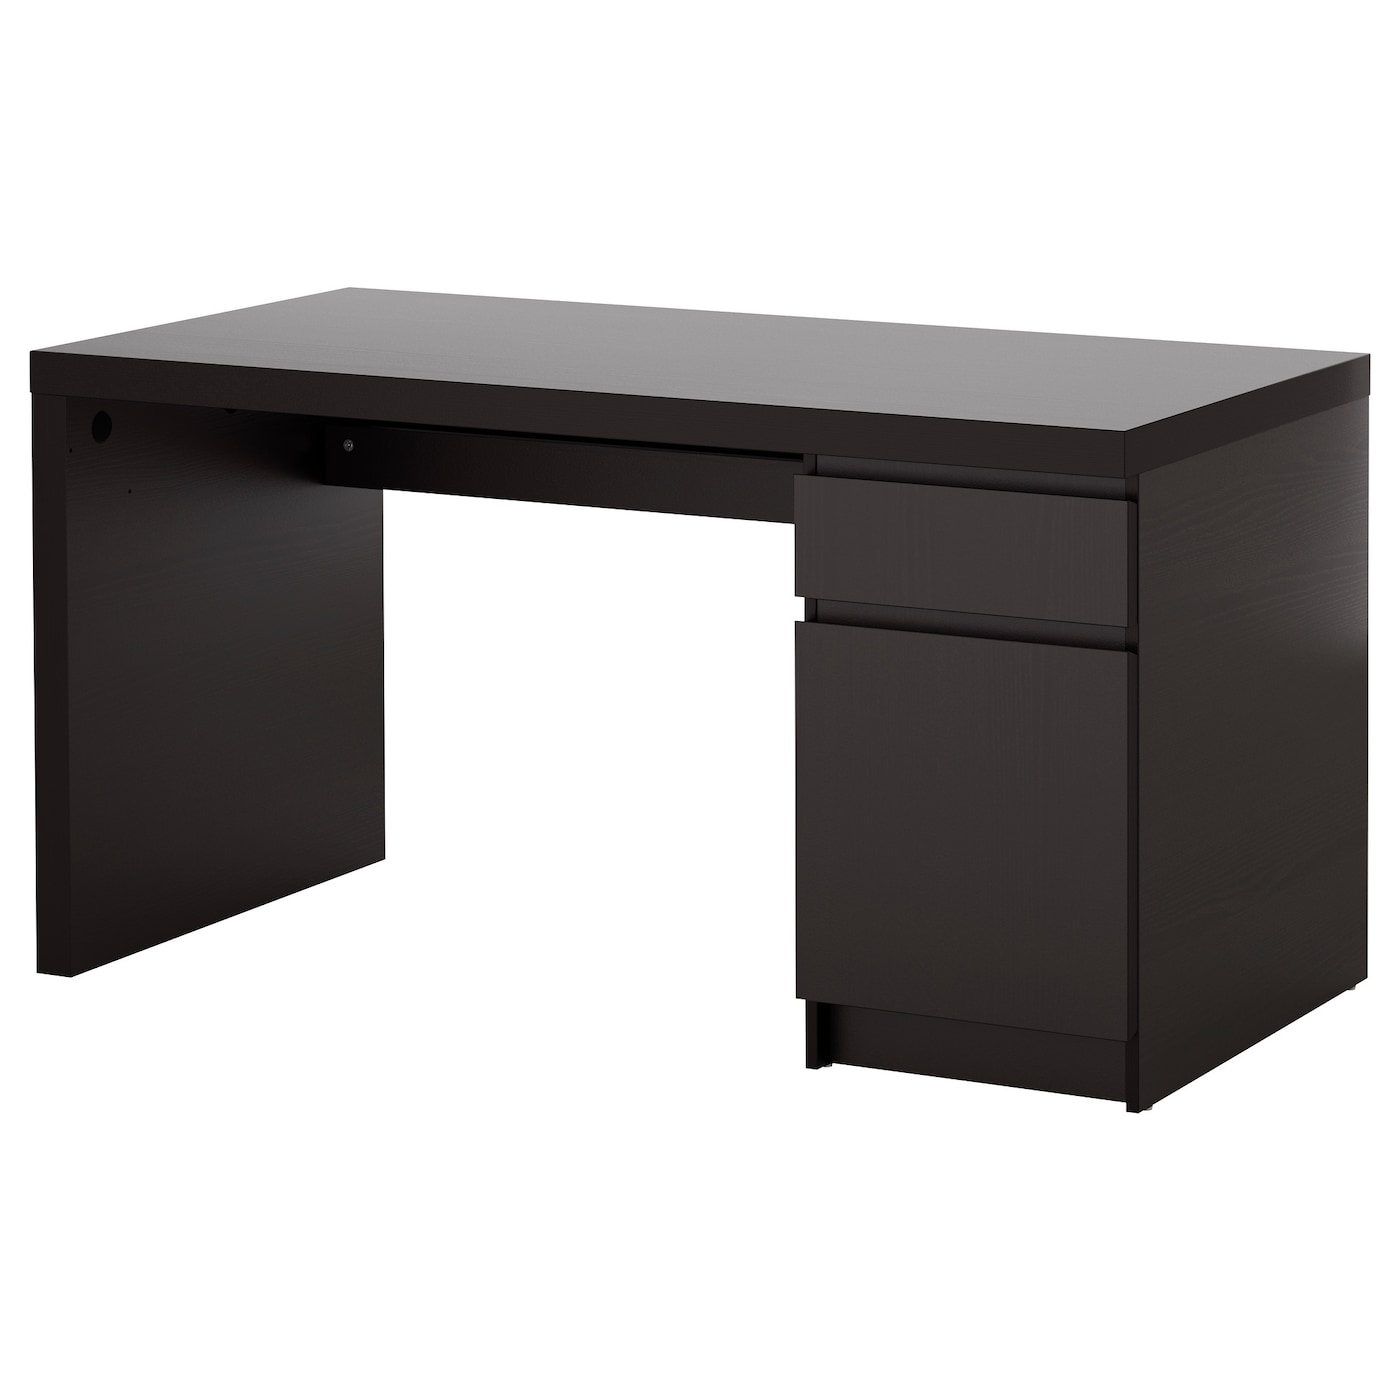 malm desk black brown 140 x 65 cm ikea. Black Bedroom Furniture Sets. Home Design Ideas